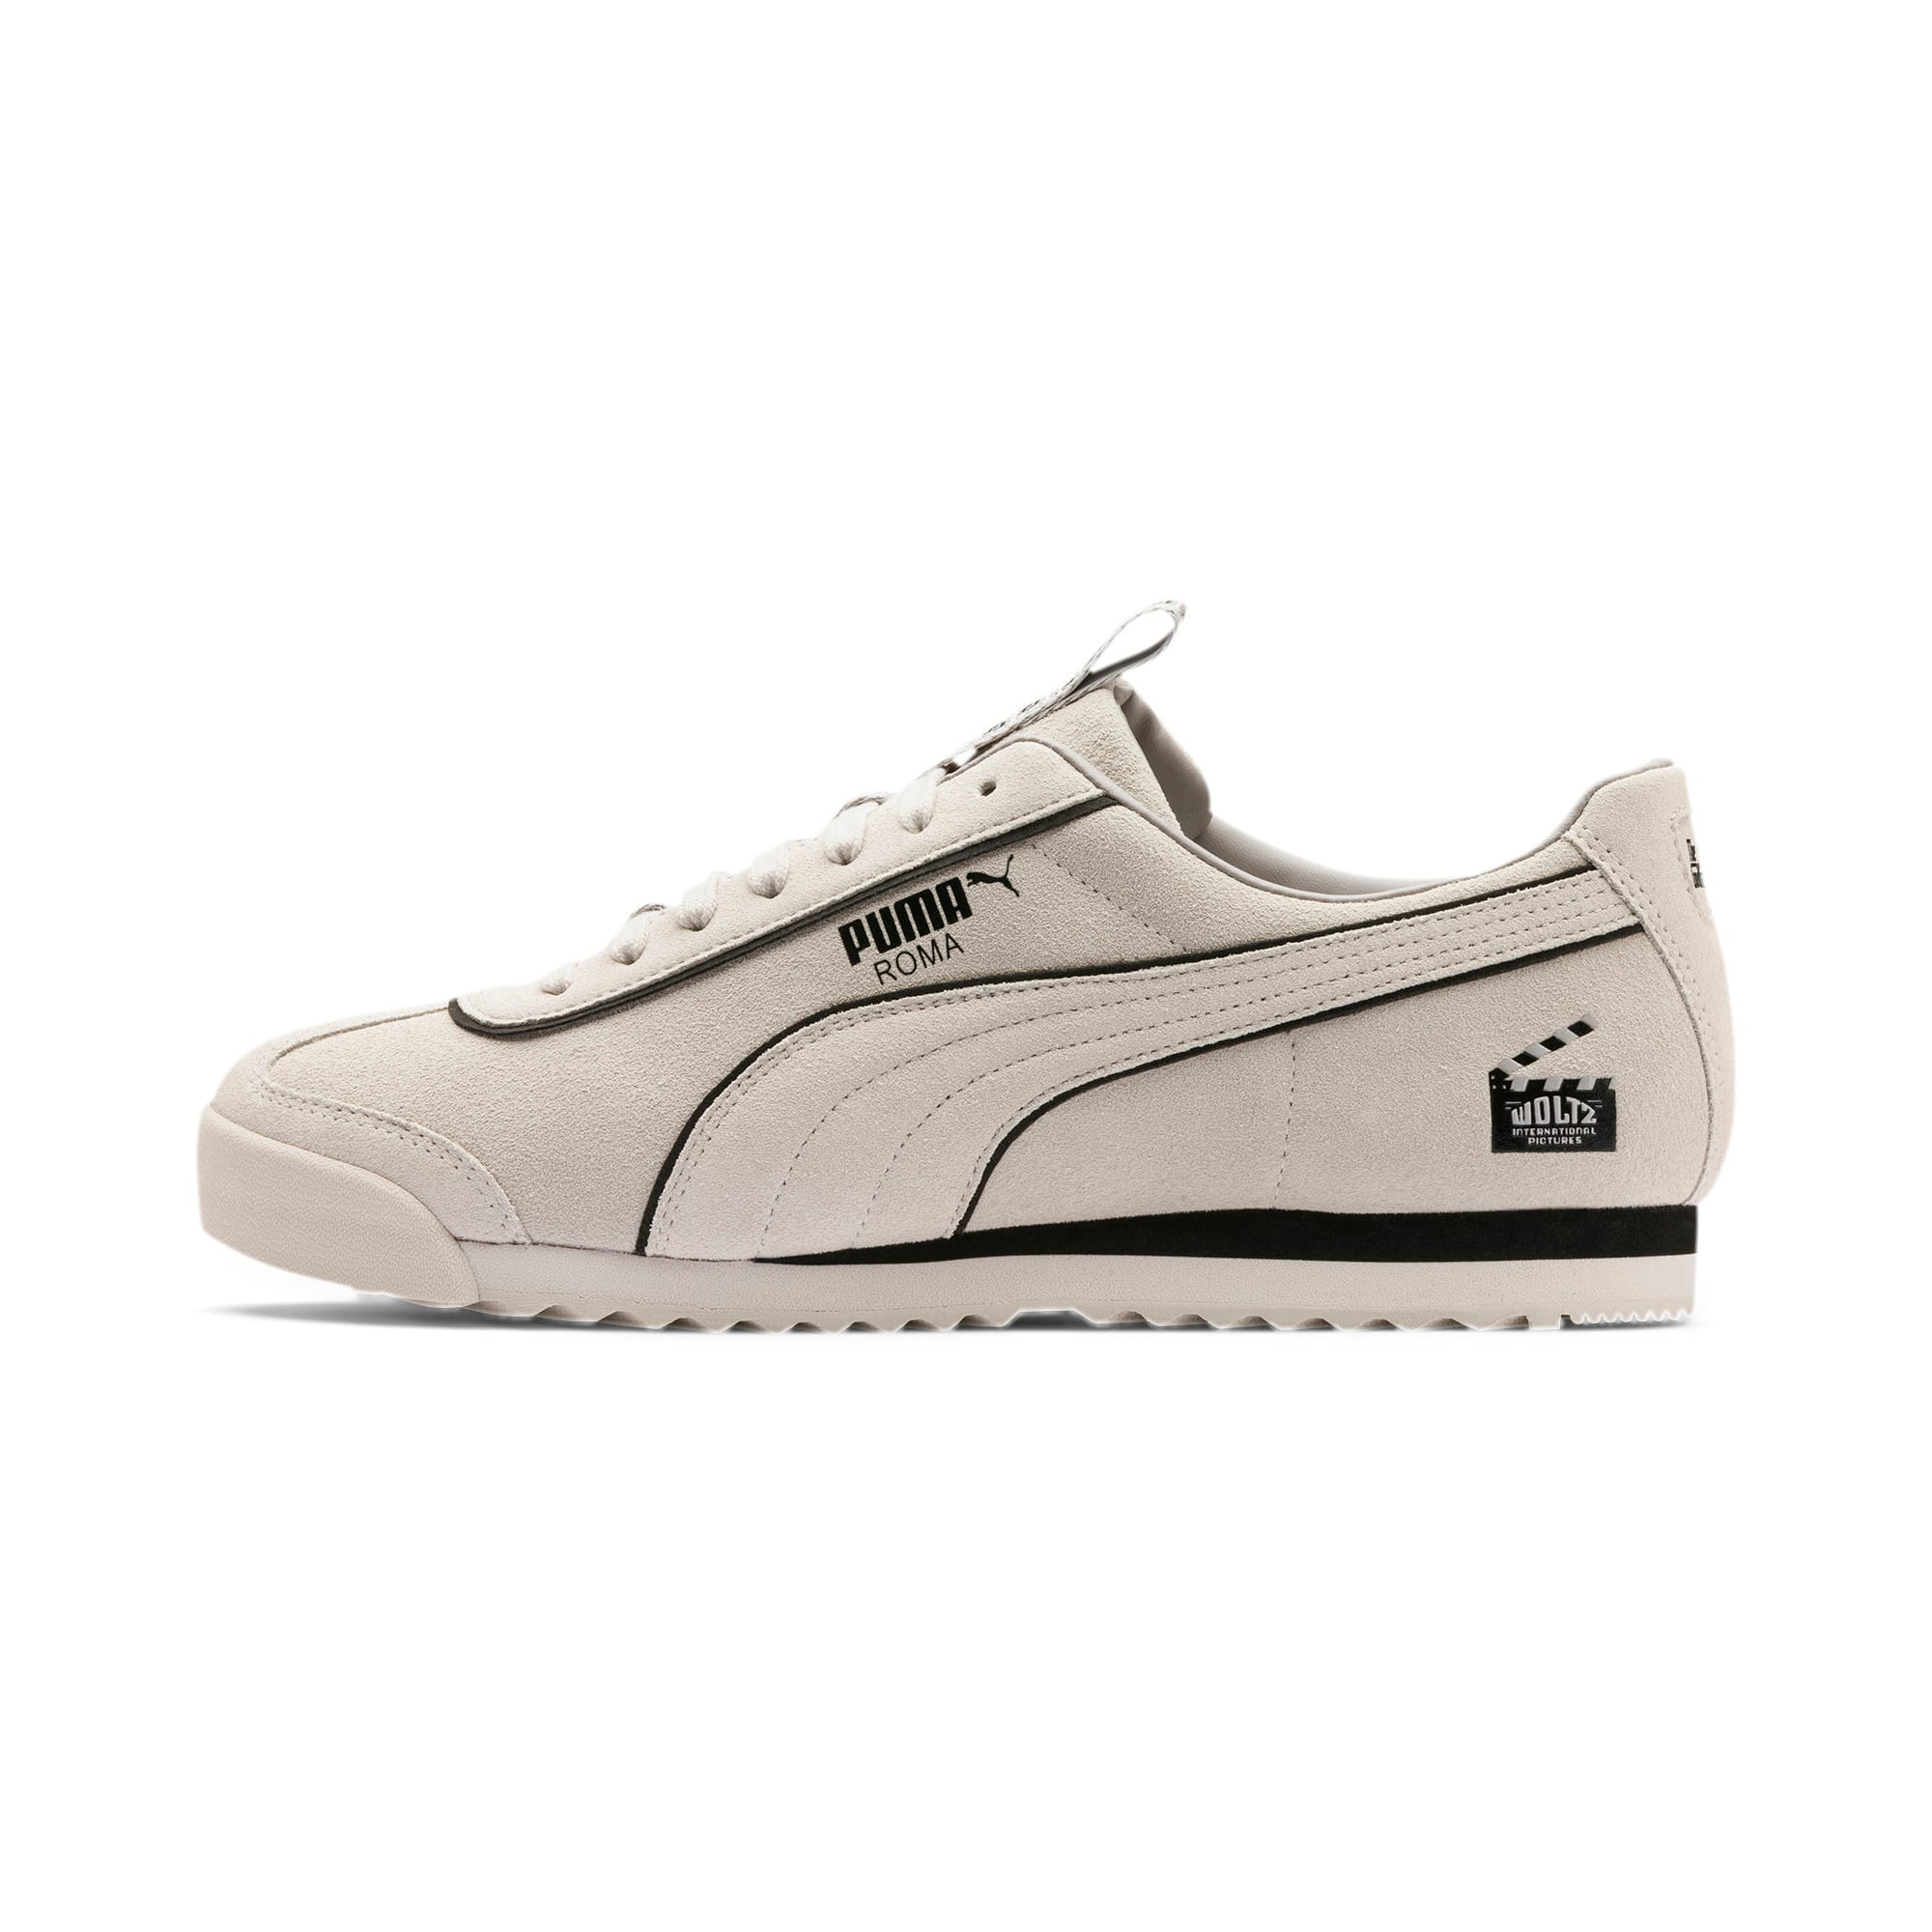 Thumbnail 1 of Roma The Godfather WOLTZ Trainers, WINDCHIME-Puma Black, medium